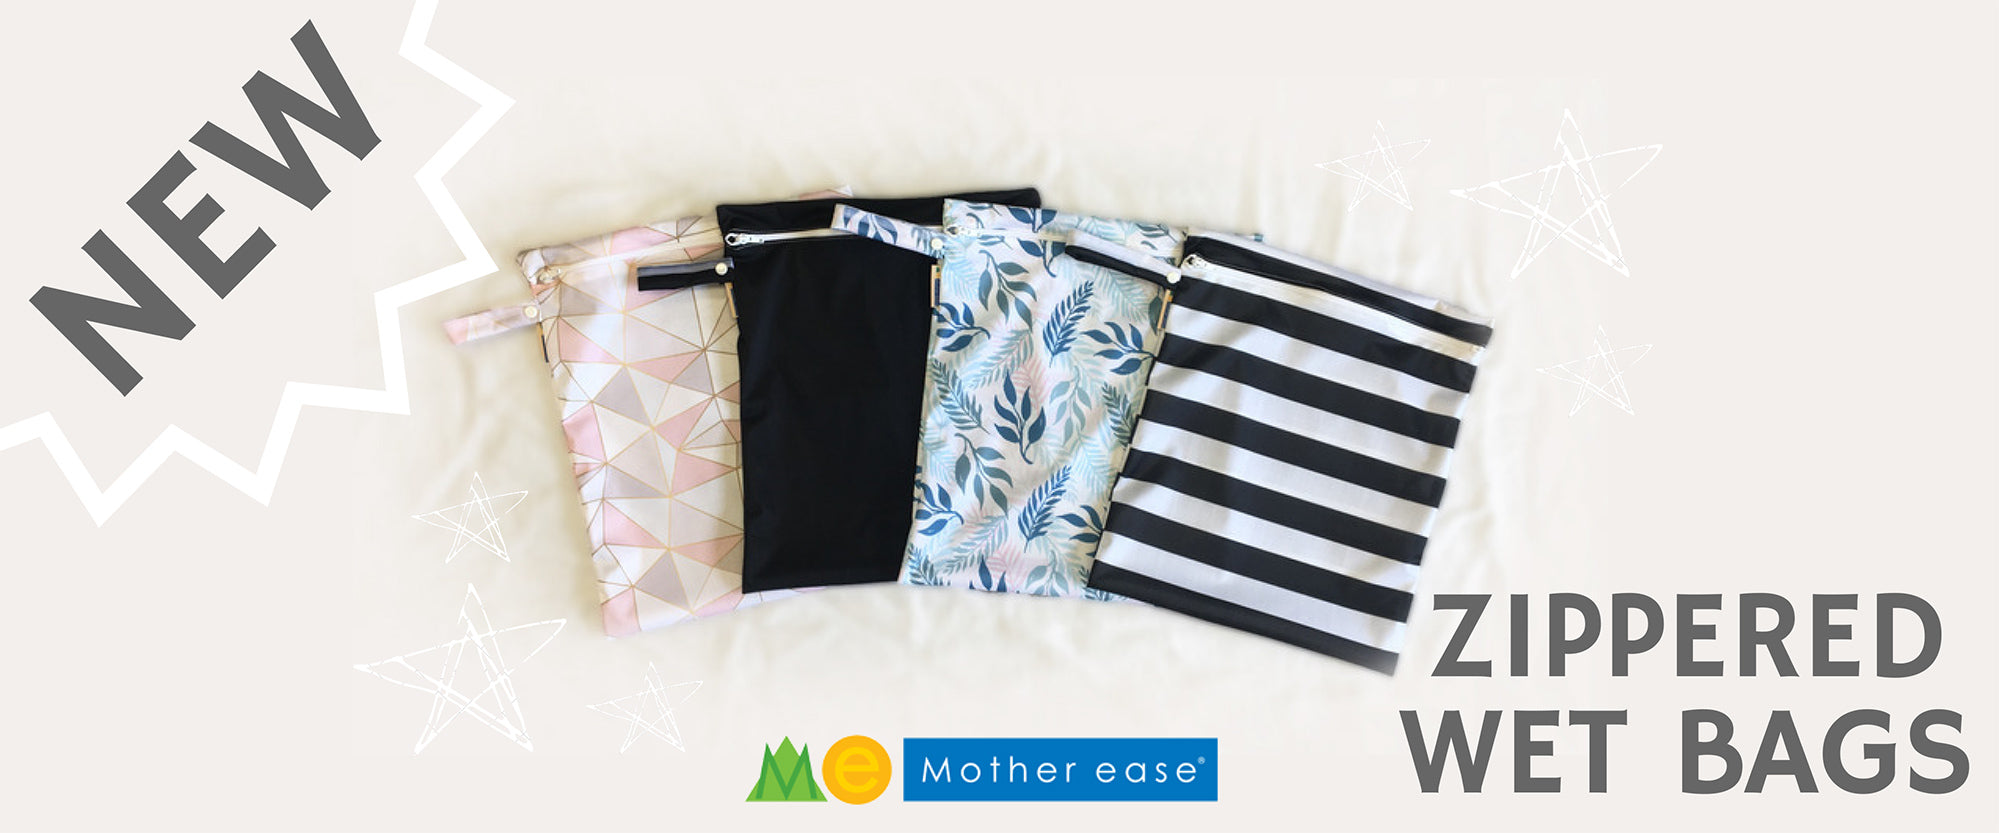 Mother ease Cloth Diapers and Diapering Accessories 375e835b0d